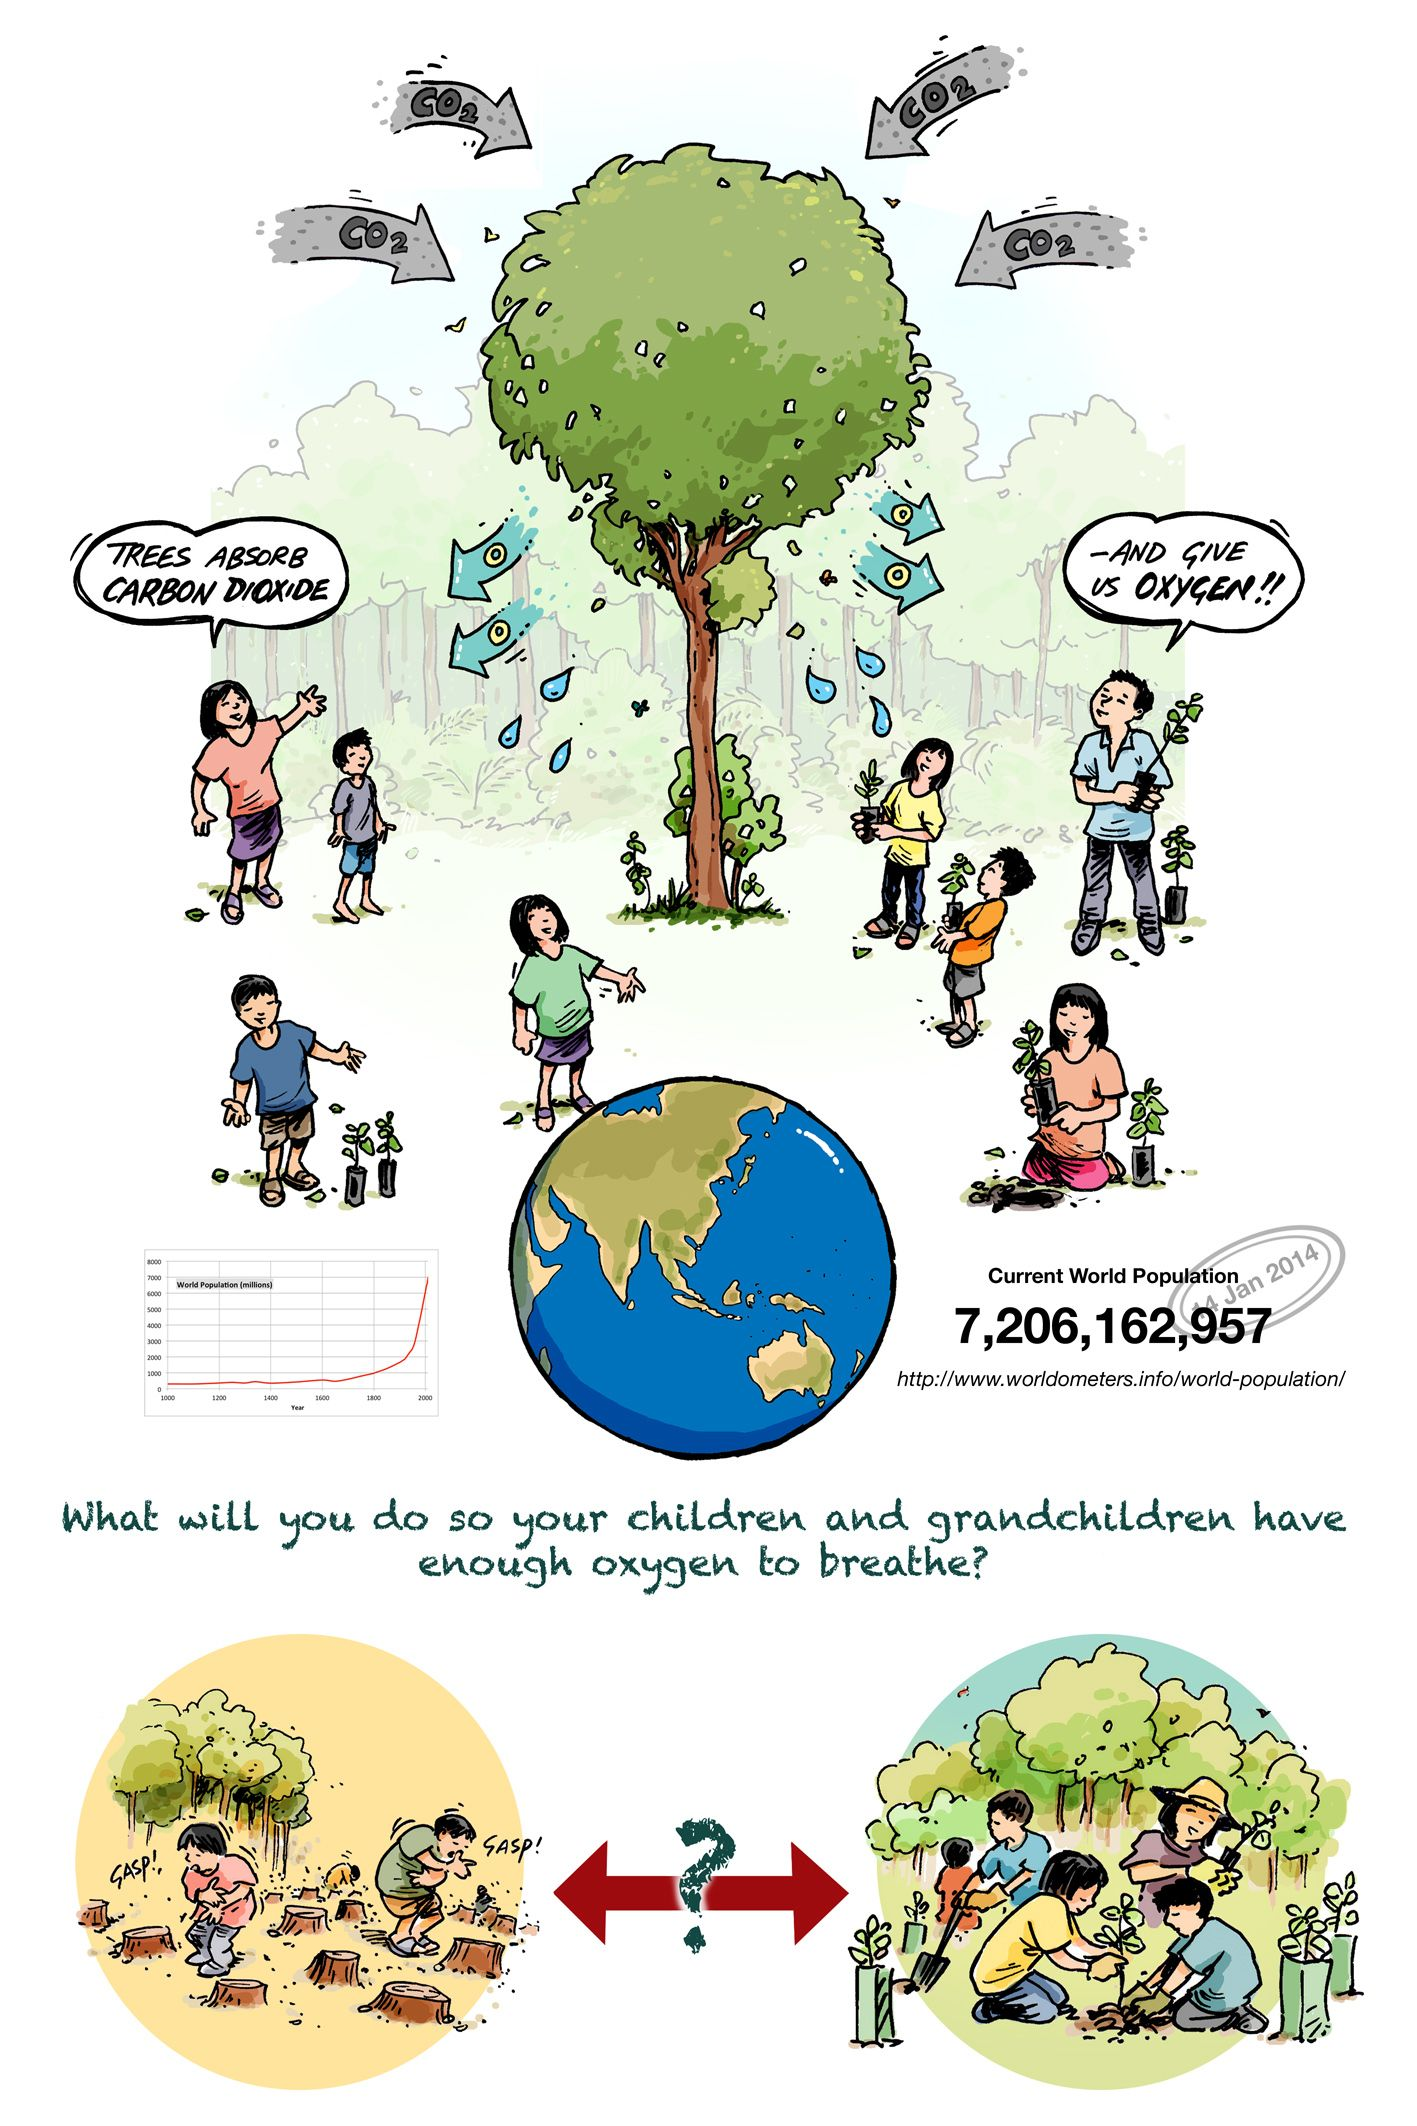 small resolution of support our goal www aridzoneafforestation org aza aridzoneafforestation safetree afforestation plant trees forests saveearth saveplanet activism